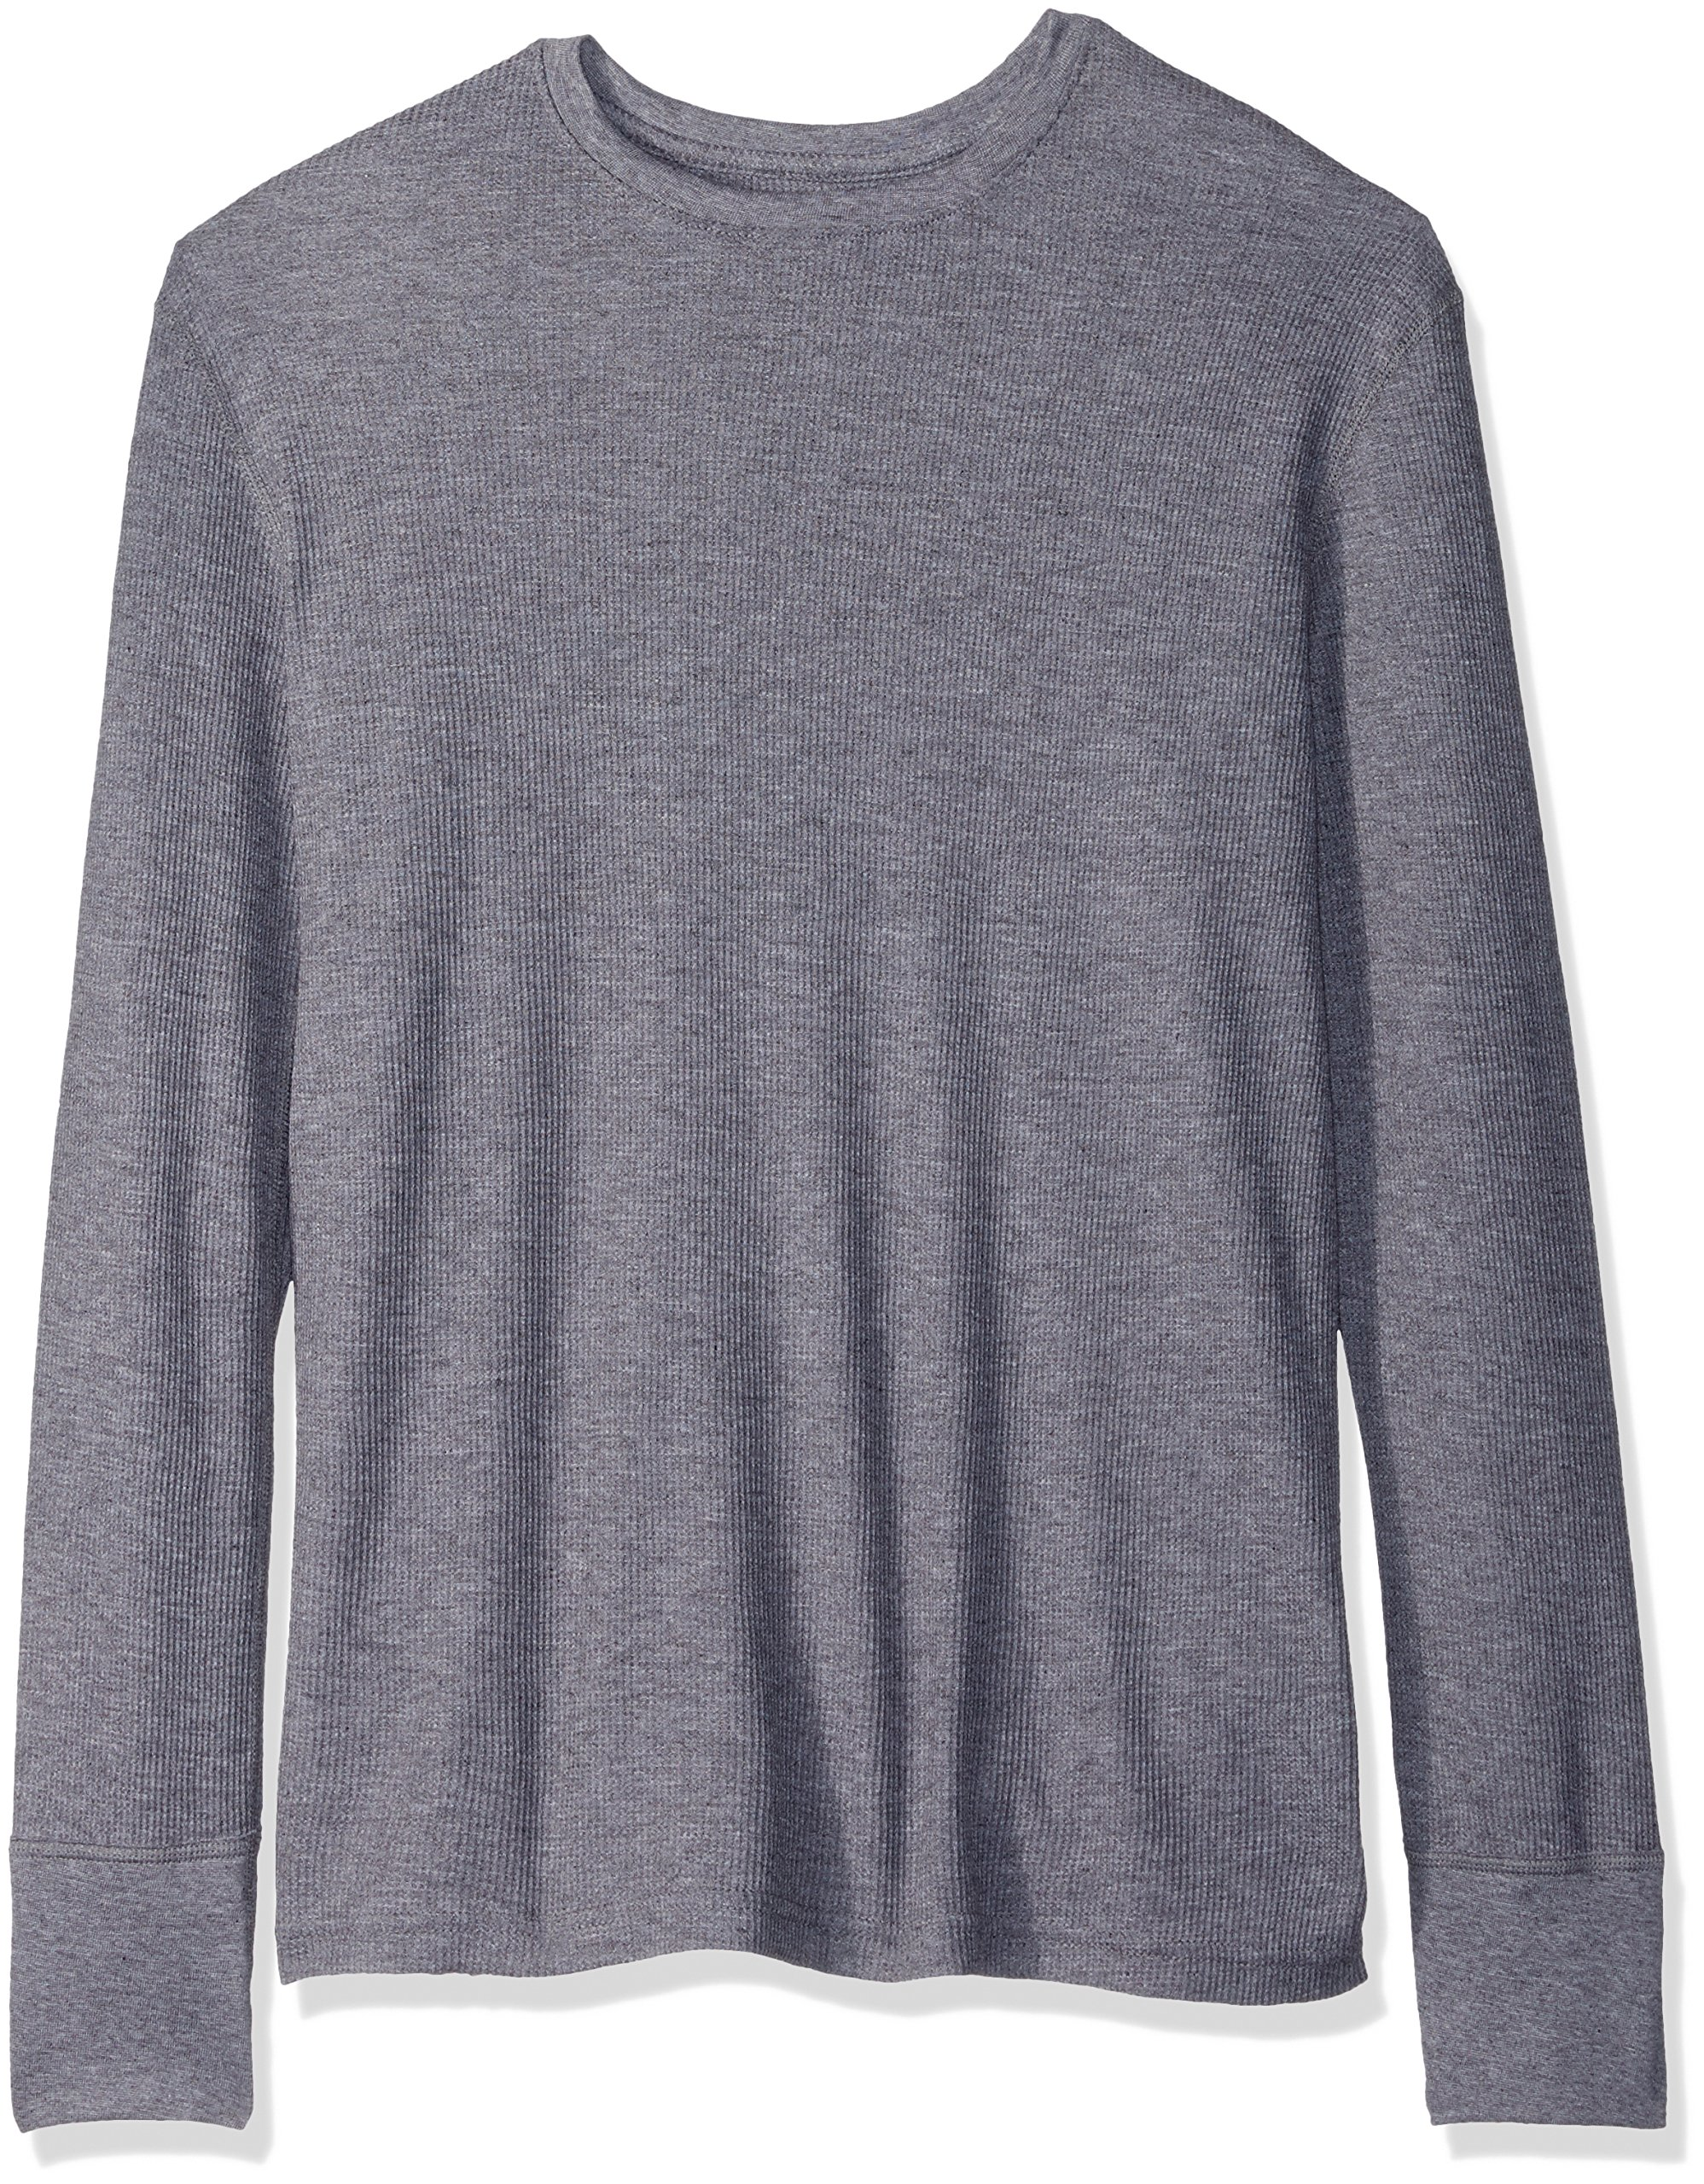 Fruit of the Loom Men's Premium Natural Touch Thermal Top, Charcoal Grey Heather, Large by Fruit of the Loom